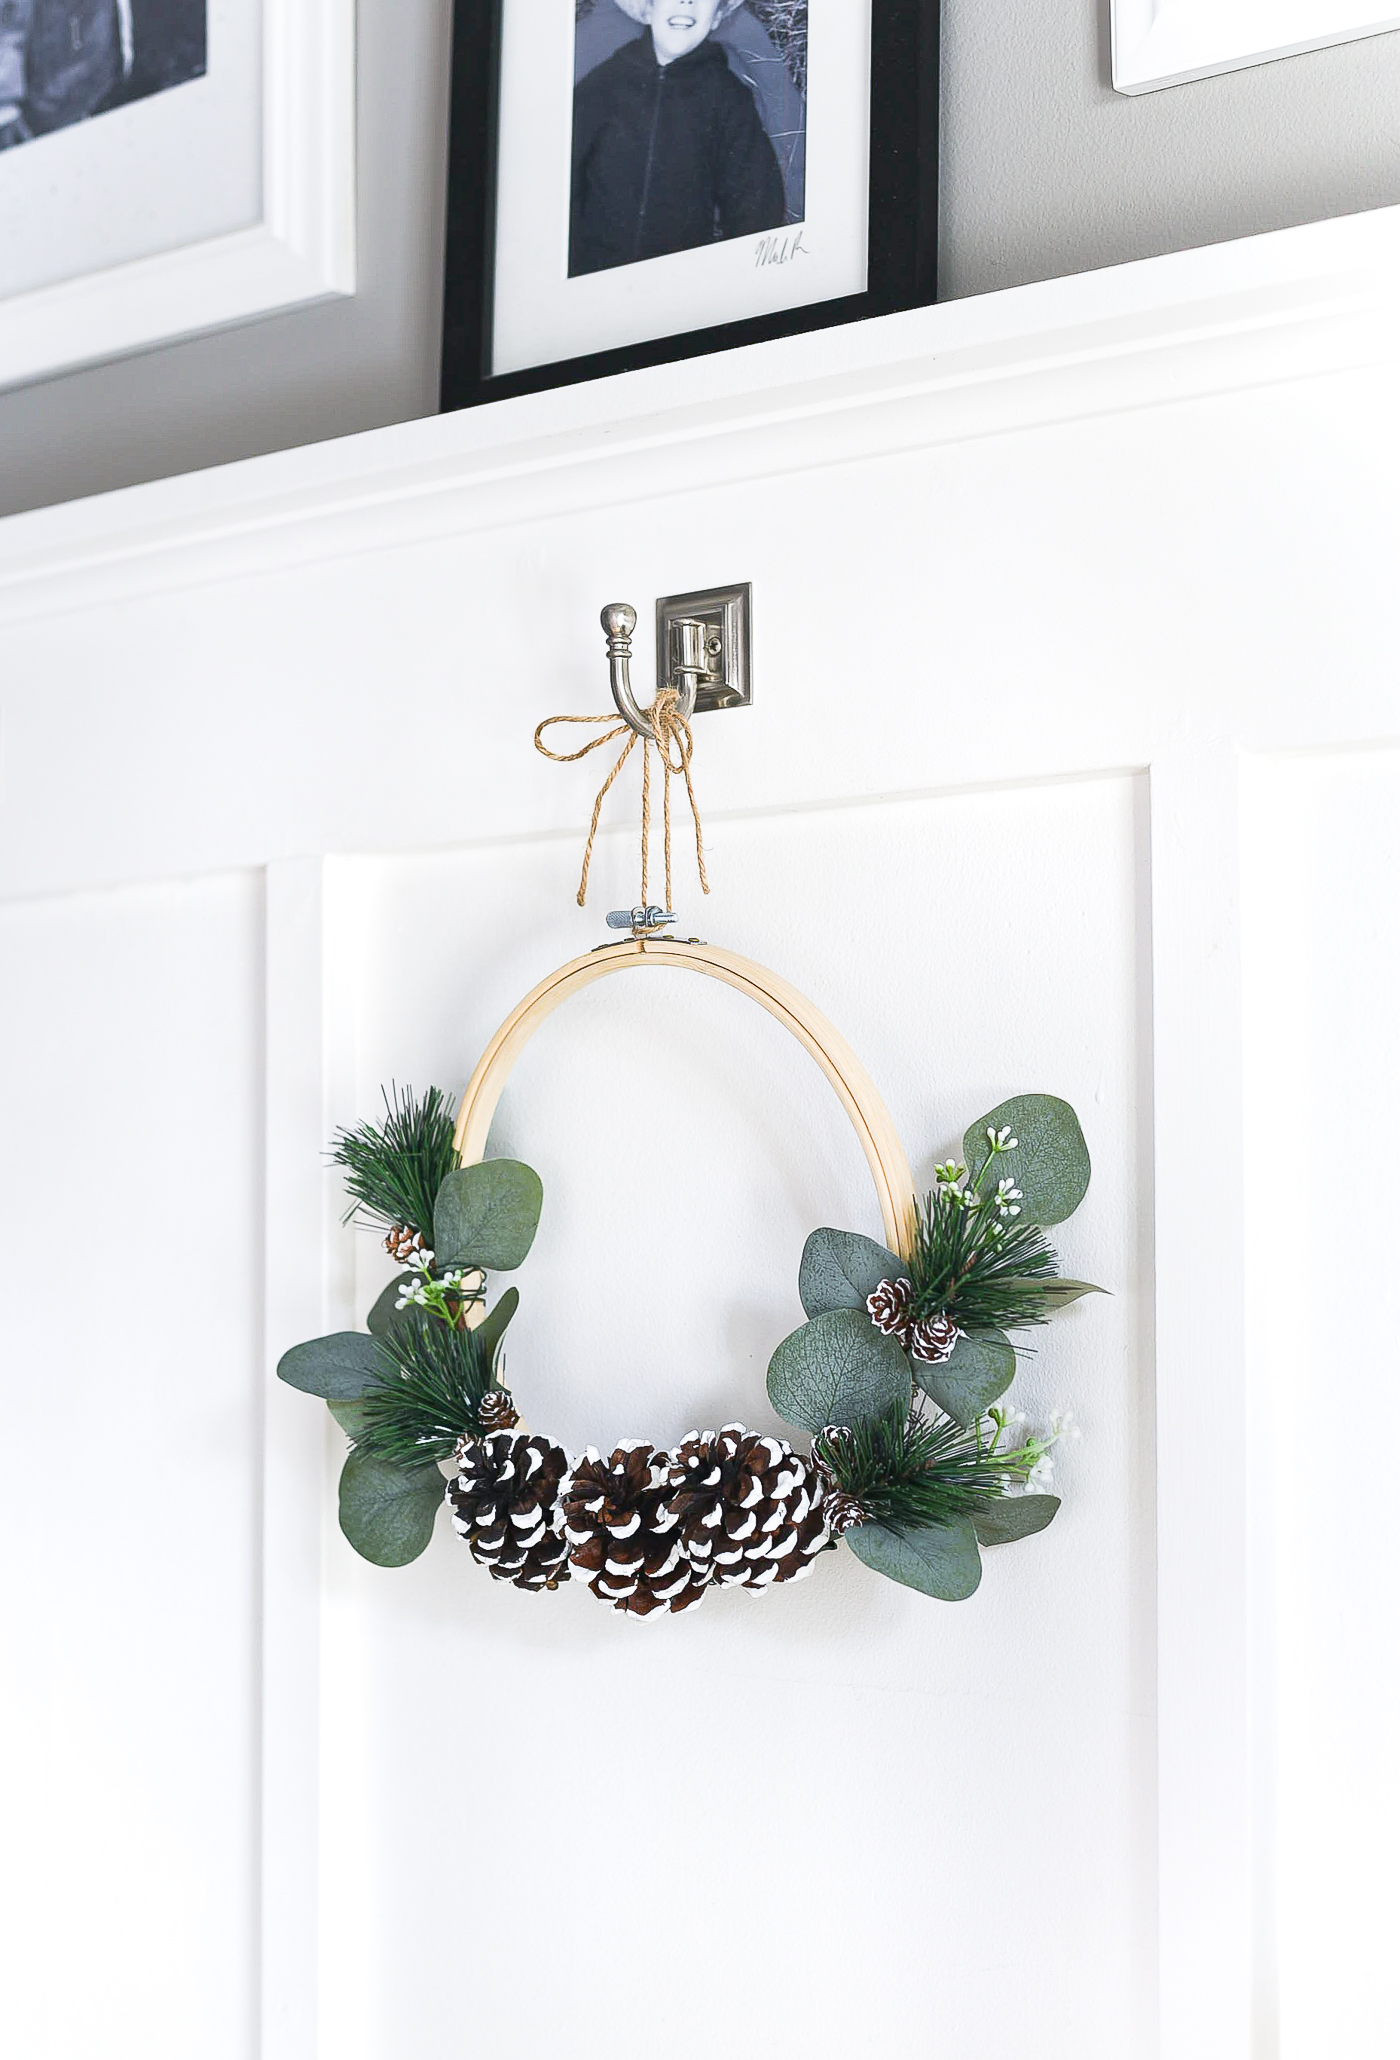 Embroidery Hoop Winter Wreath - Wreath Ideas with Embroidery Hoops - Winter Wreath Crafts - DIY - How To Make Embroidery Hoop Wreath